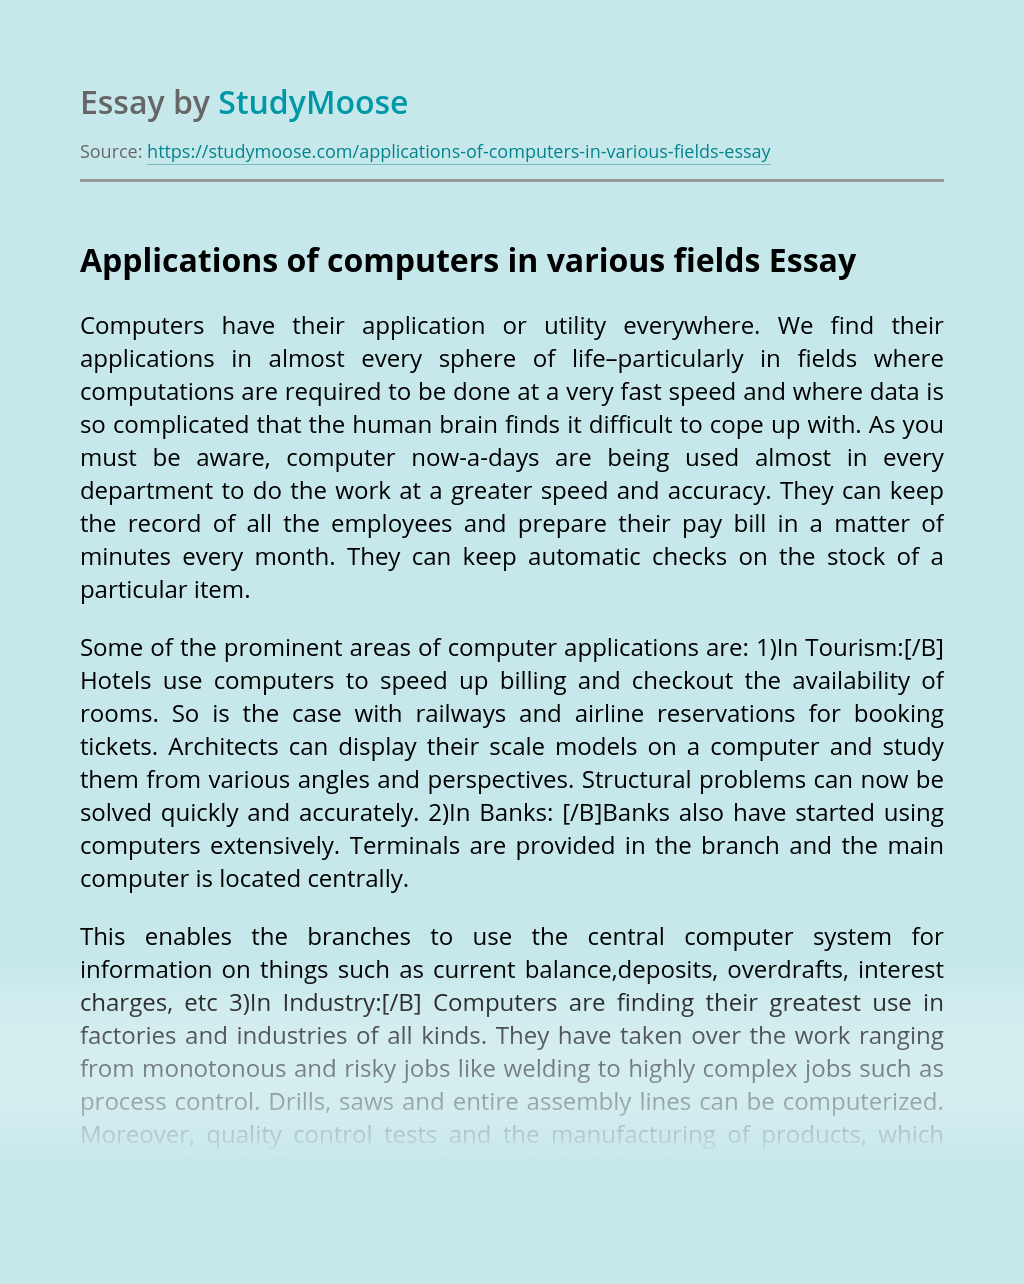 Applications of computers in various fields